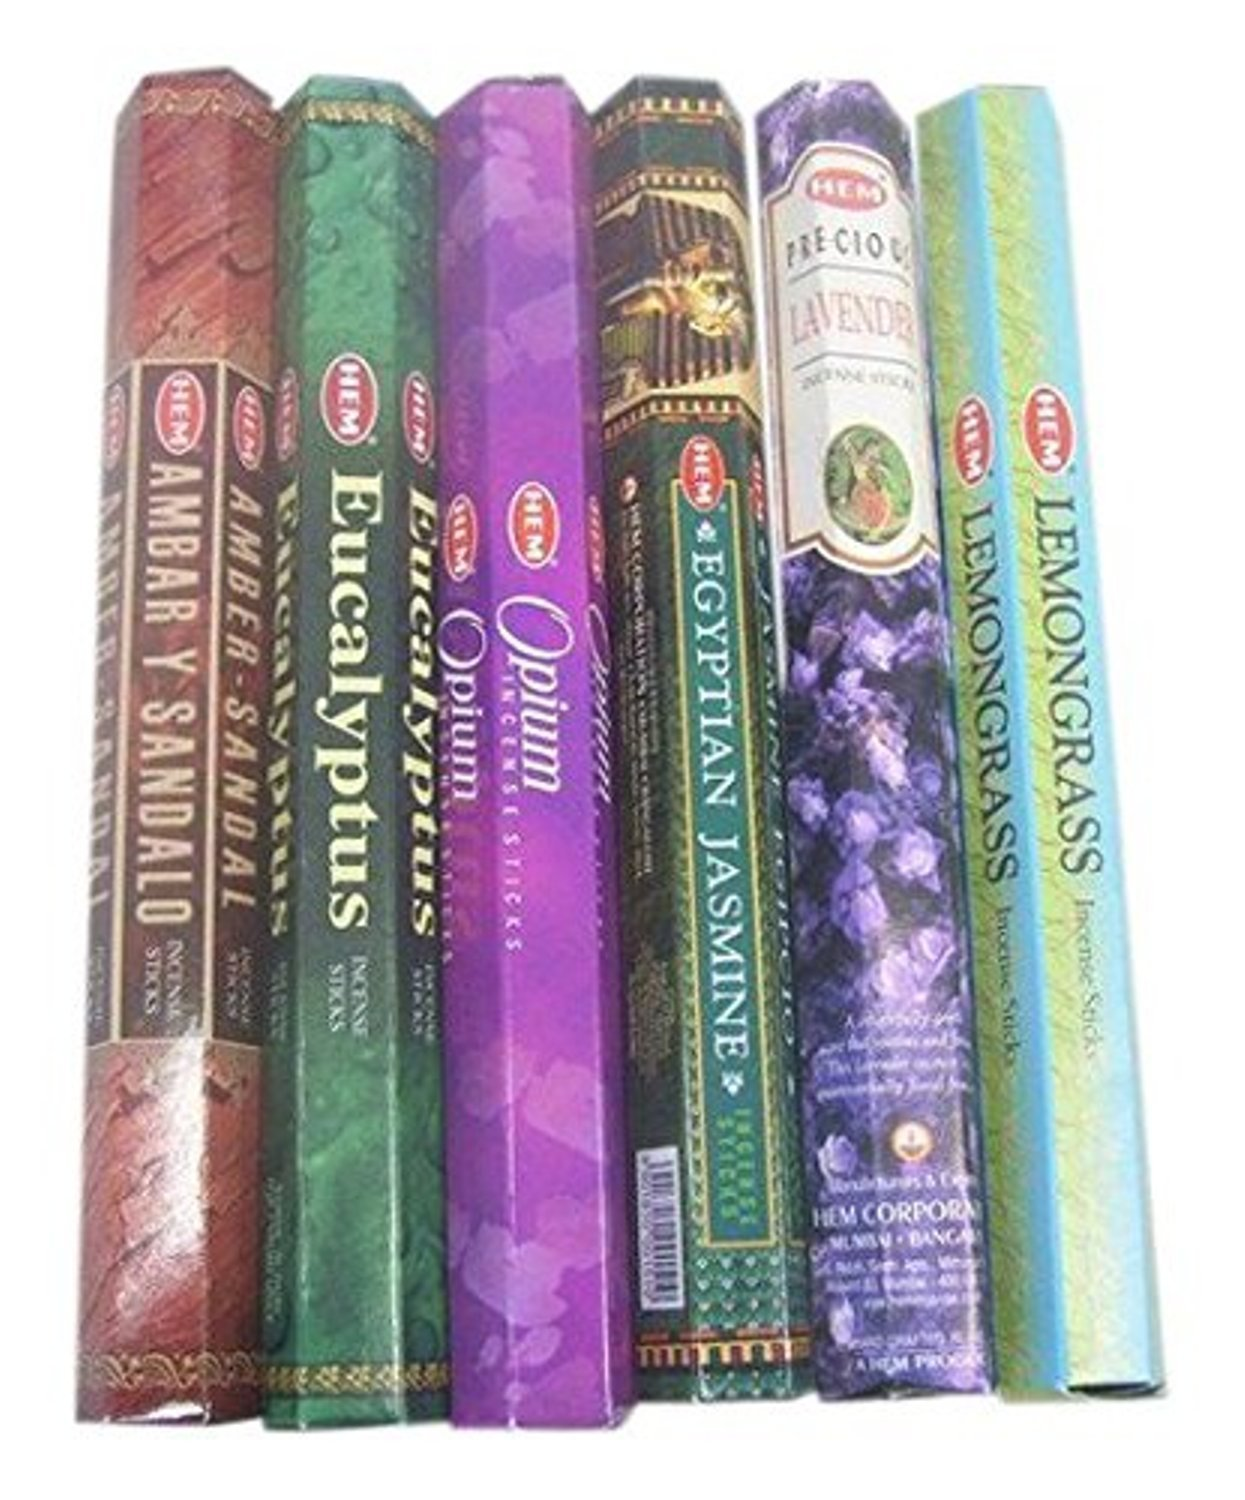 HEM Incense Sticks Best Sellers 6 Boxes X 20 Grams, Variety Pack, Total 120 Gm Pack Of 2 by HEM Collection